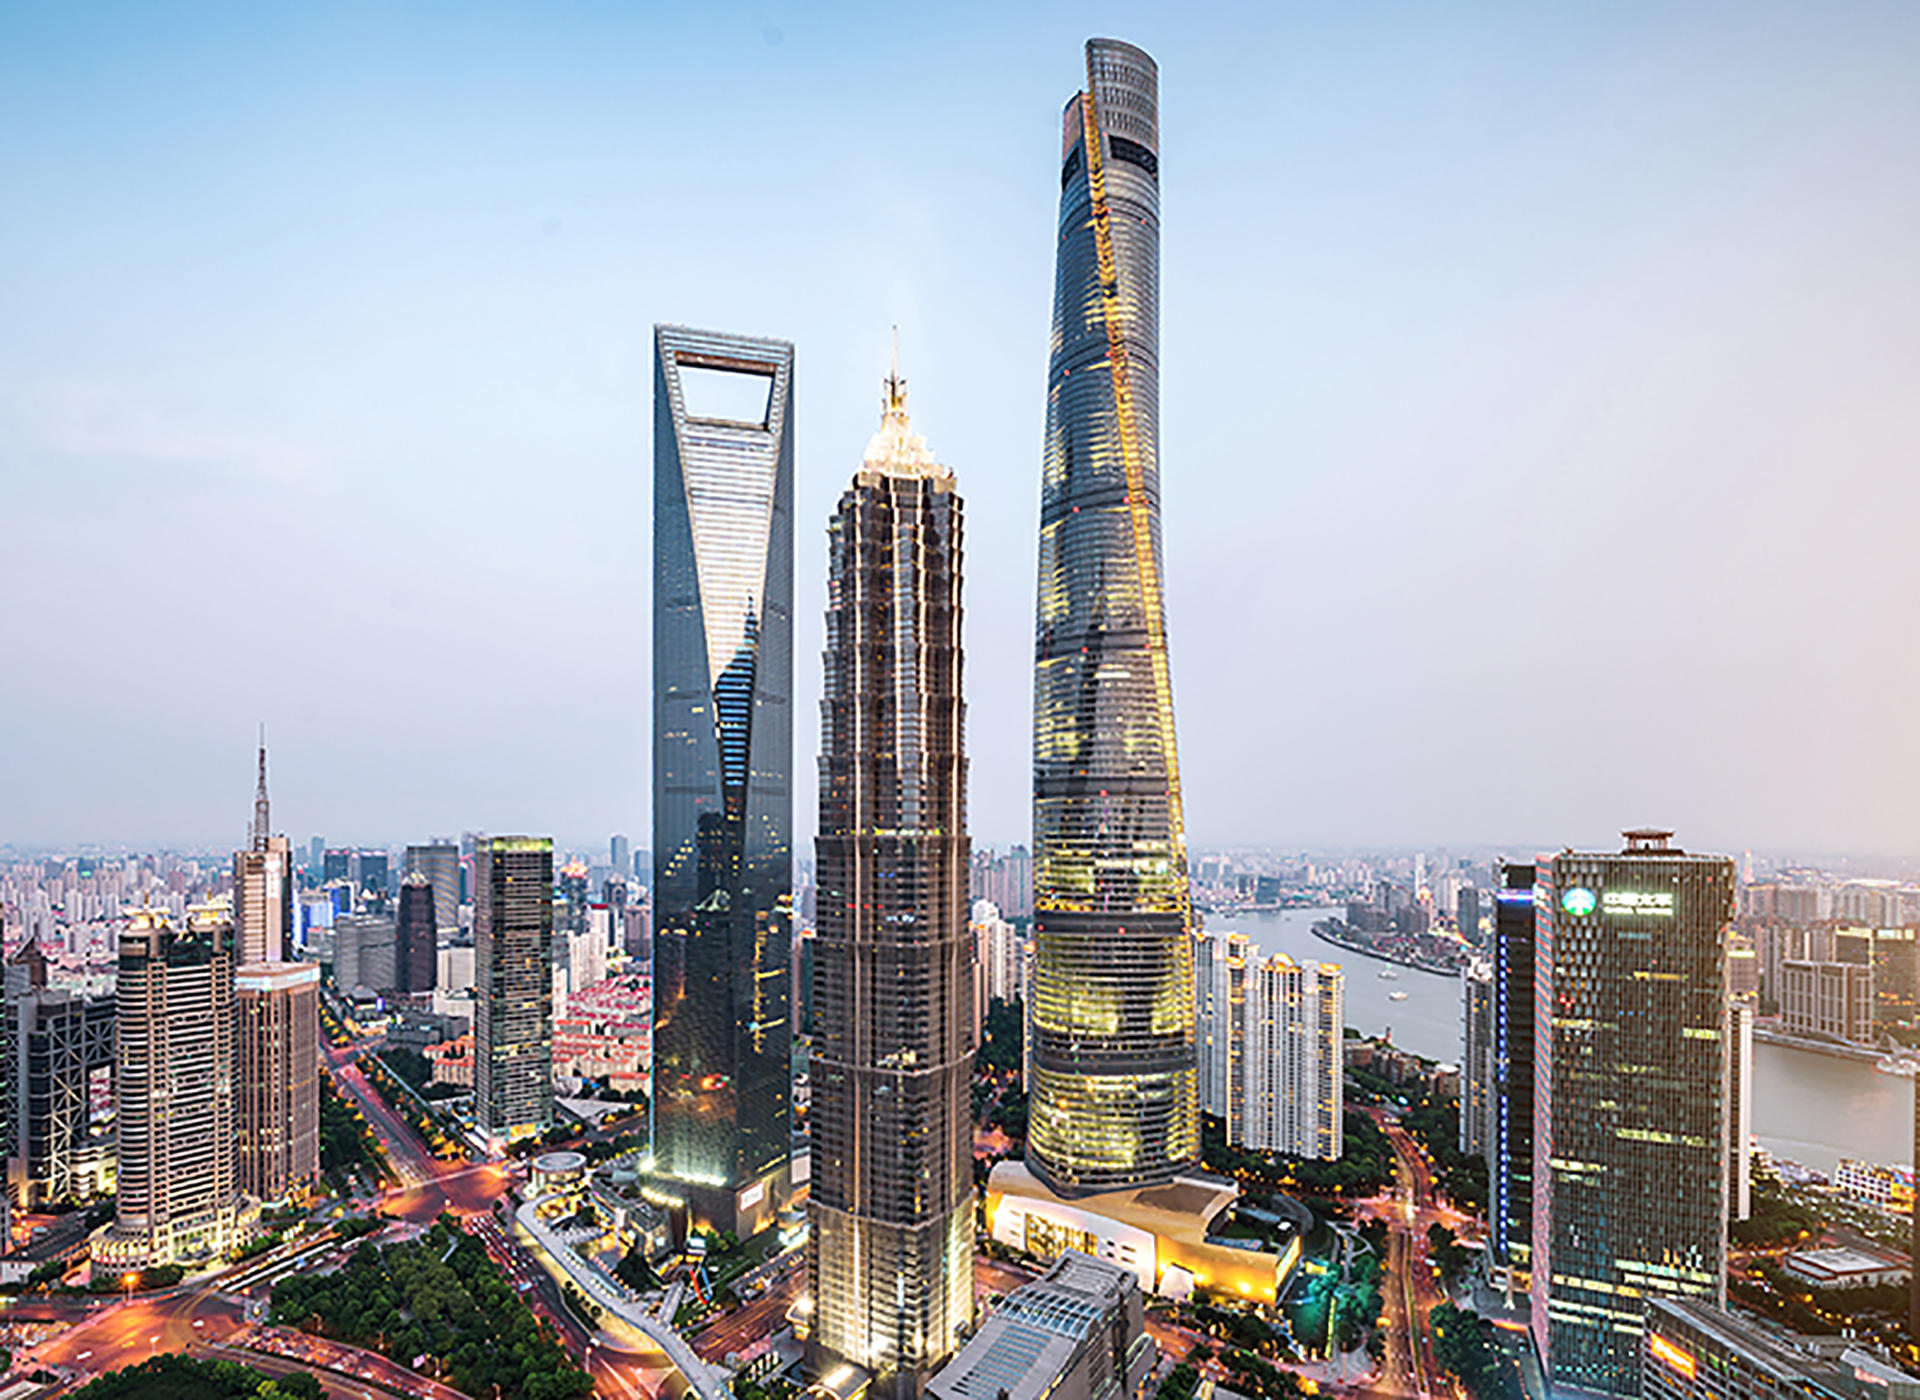 2019_November_News and events_China tops the league of the world's most influential construction companies_02